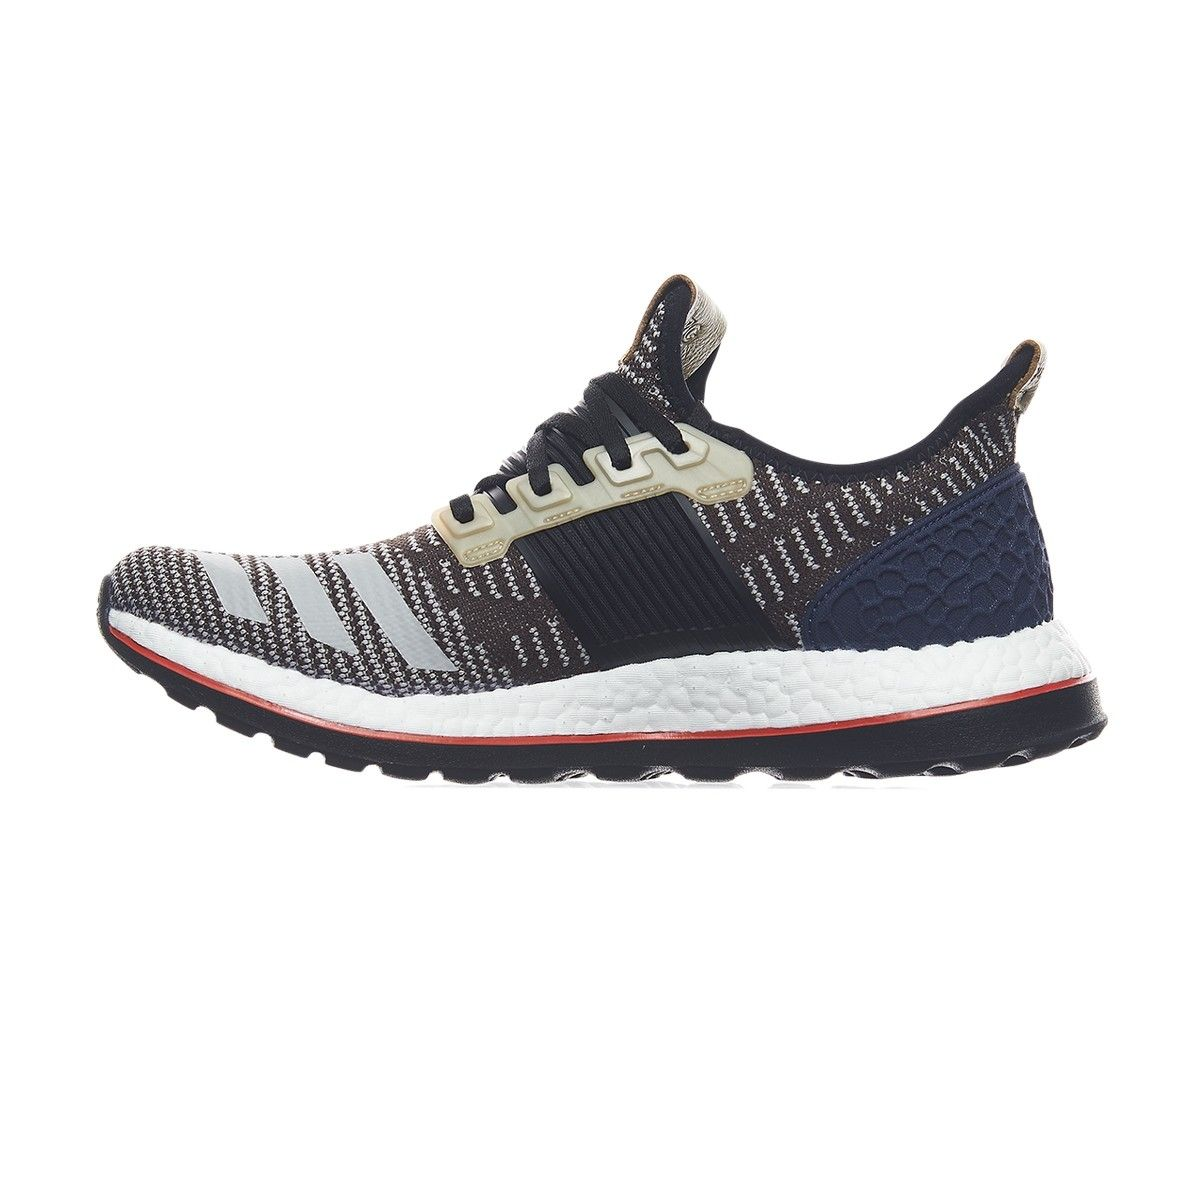 The Kolor x adidas Pure Boost ZG features shades of Navy Blue, Tan, Black  and Red while constructed with Primeknit and leather.